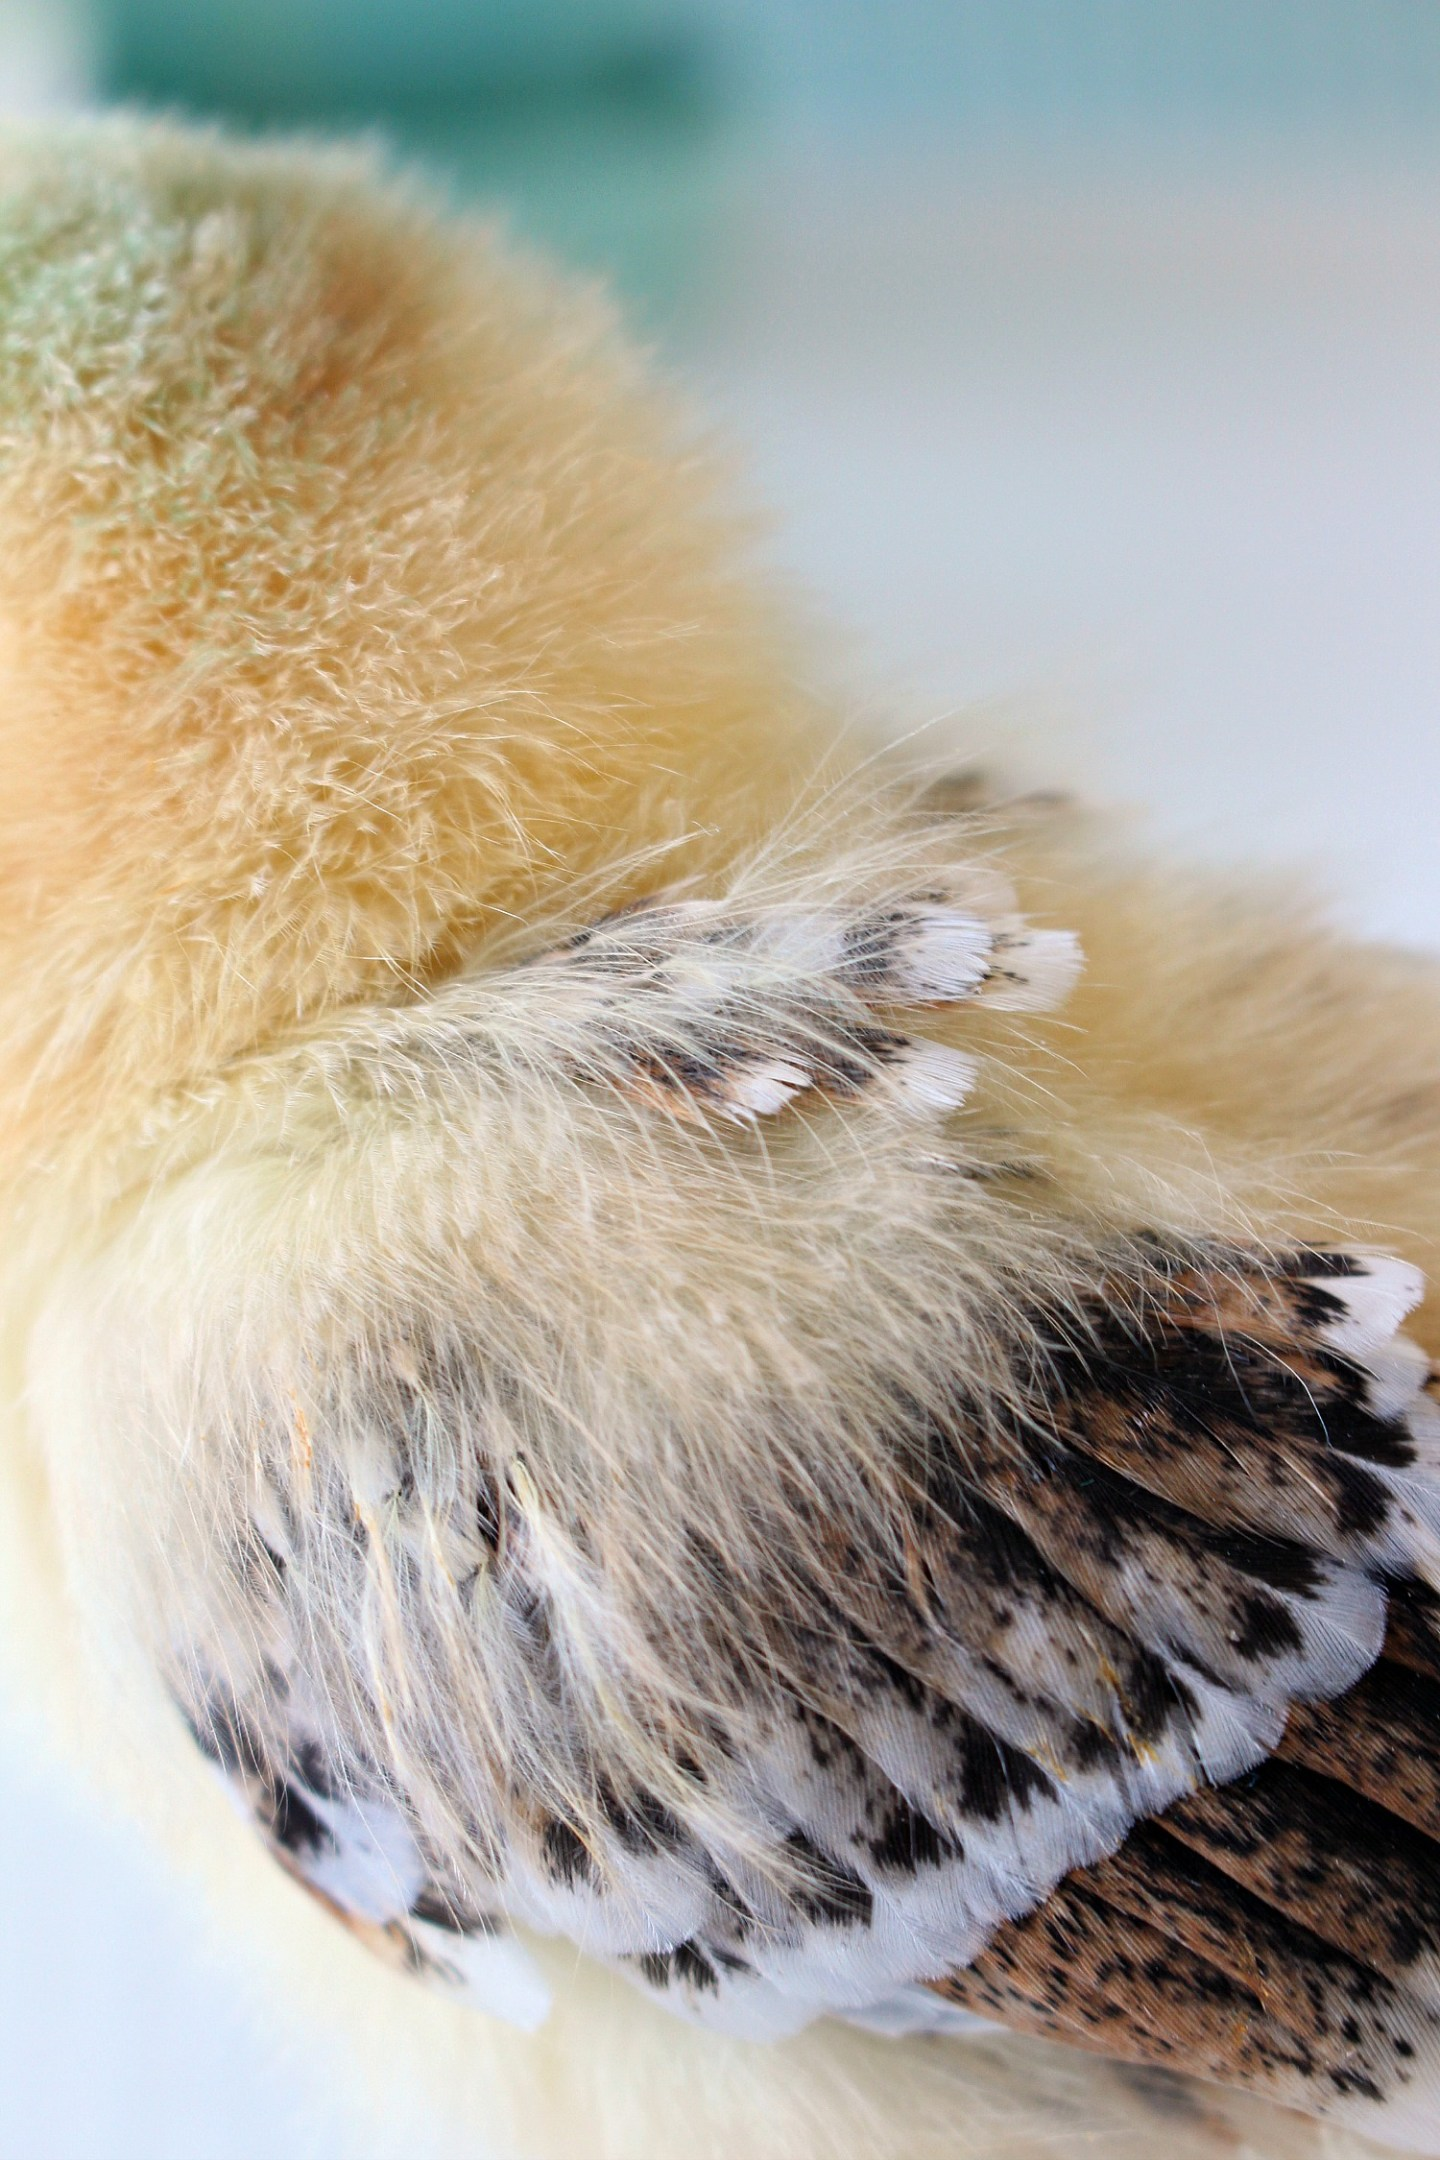 Baby Chick Growing Feathers